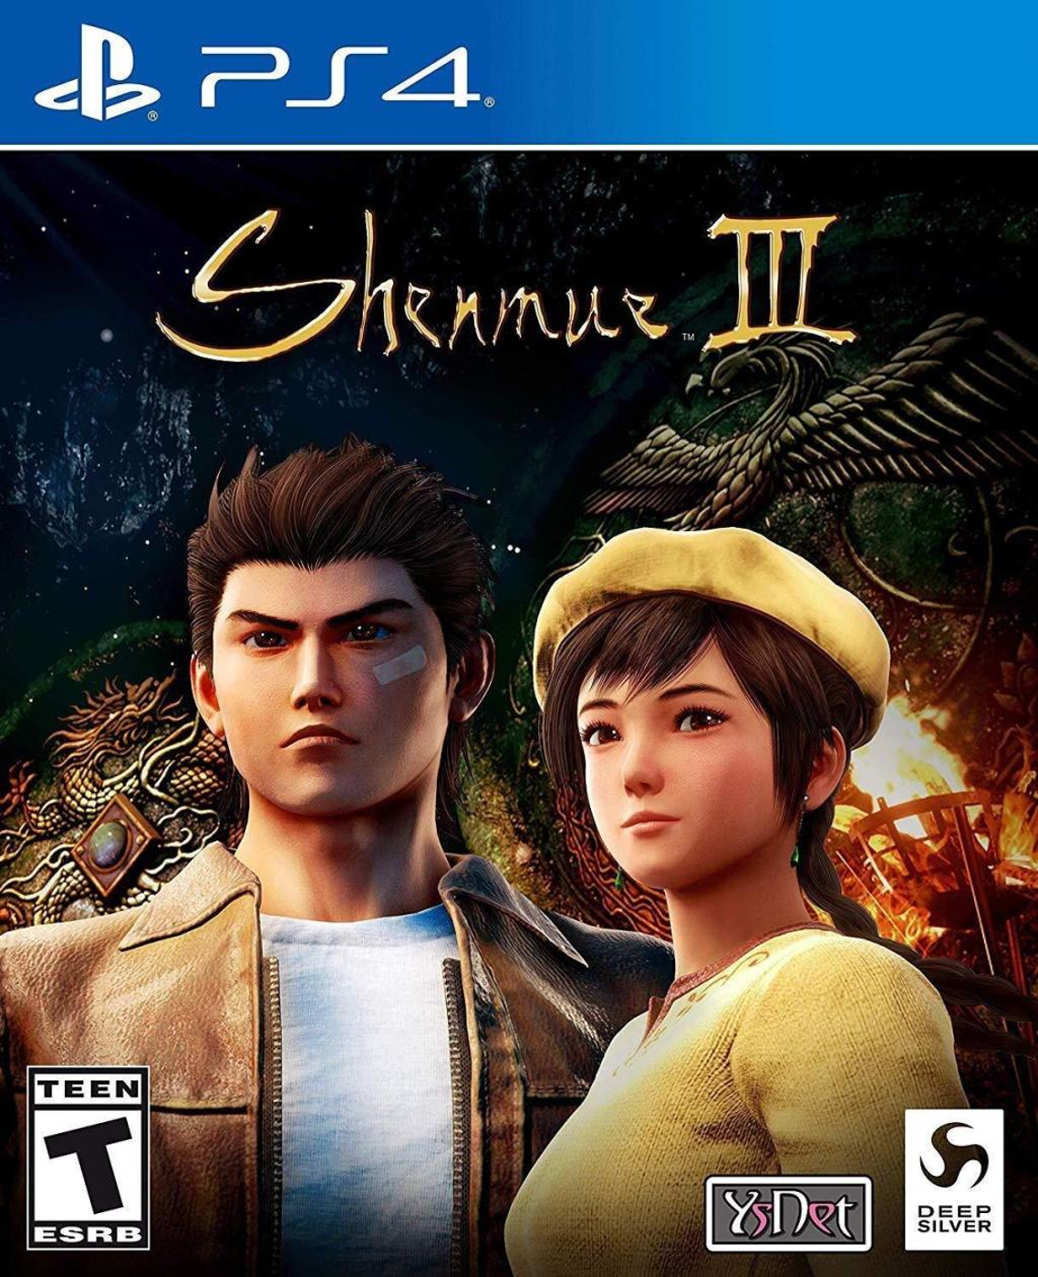 Shenmue III - PlayStation 4 - North American Box Art